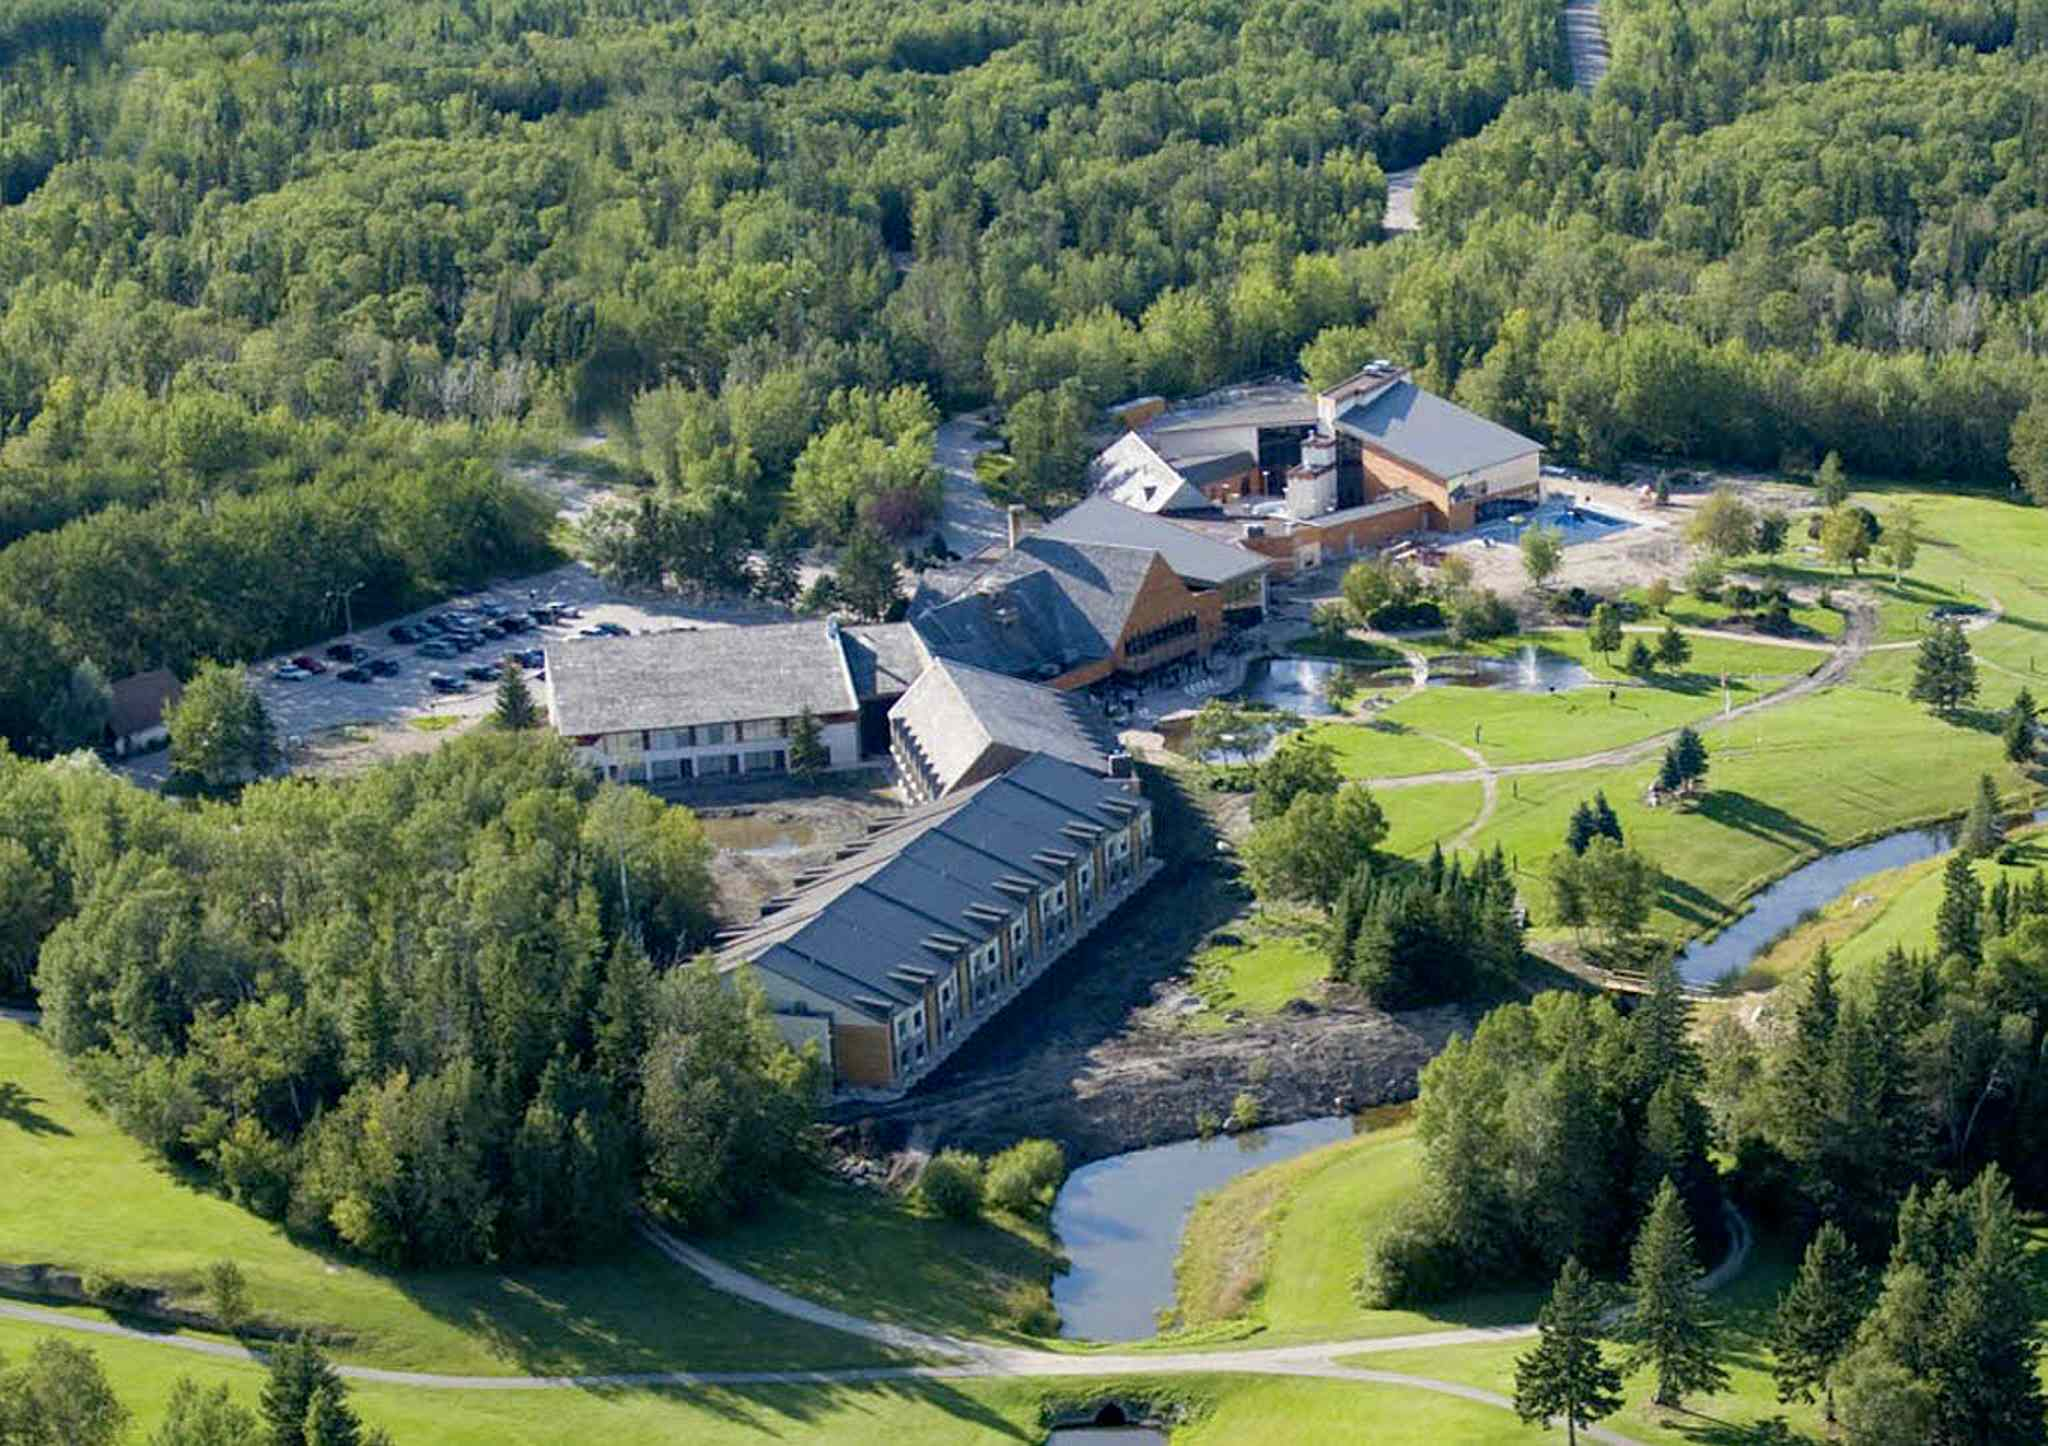 An aerial view of Lakeview Resort and Golf Course at Hecla Provincial Park.